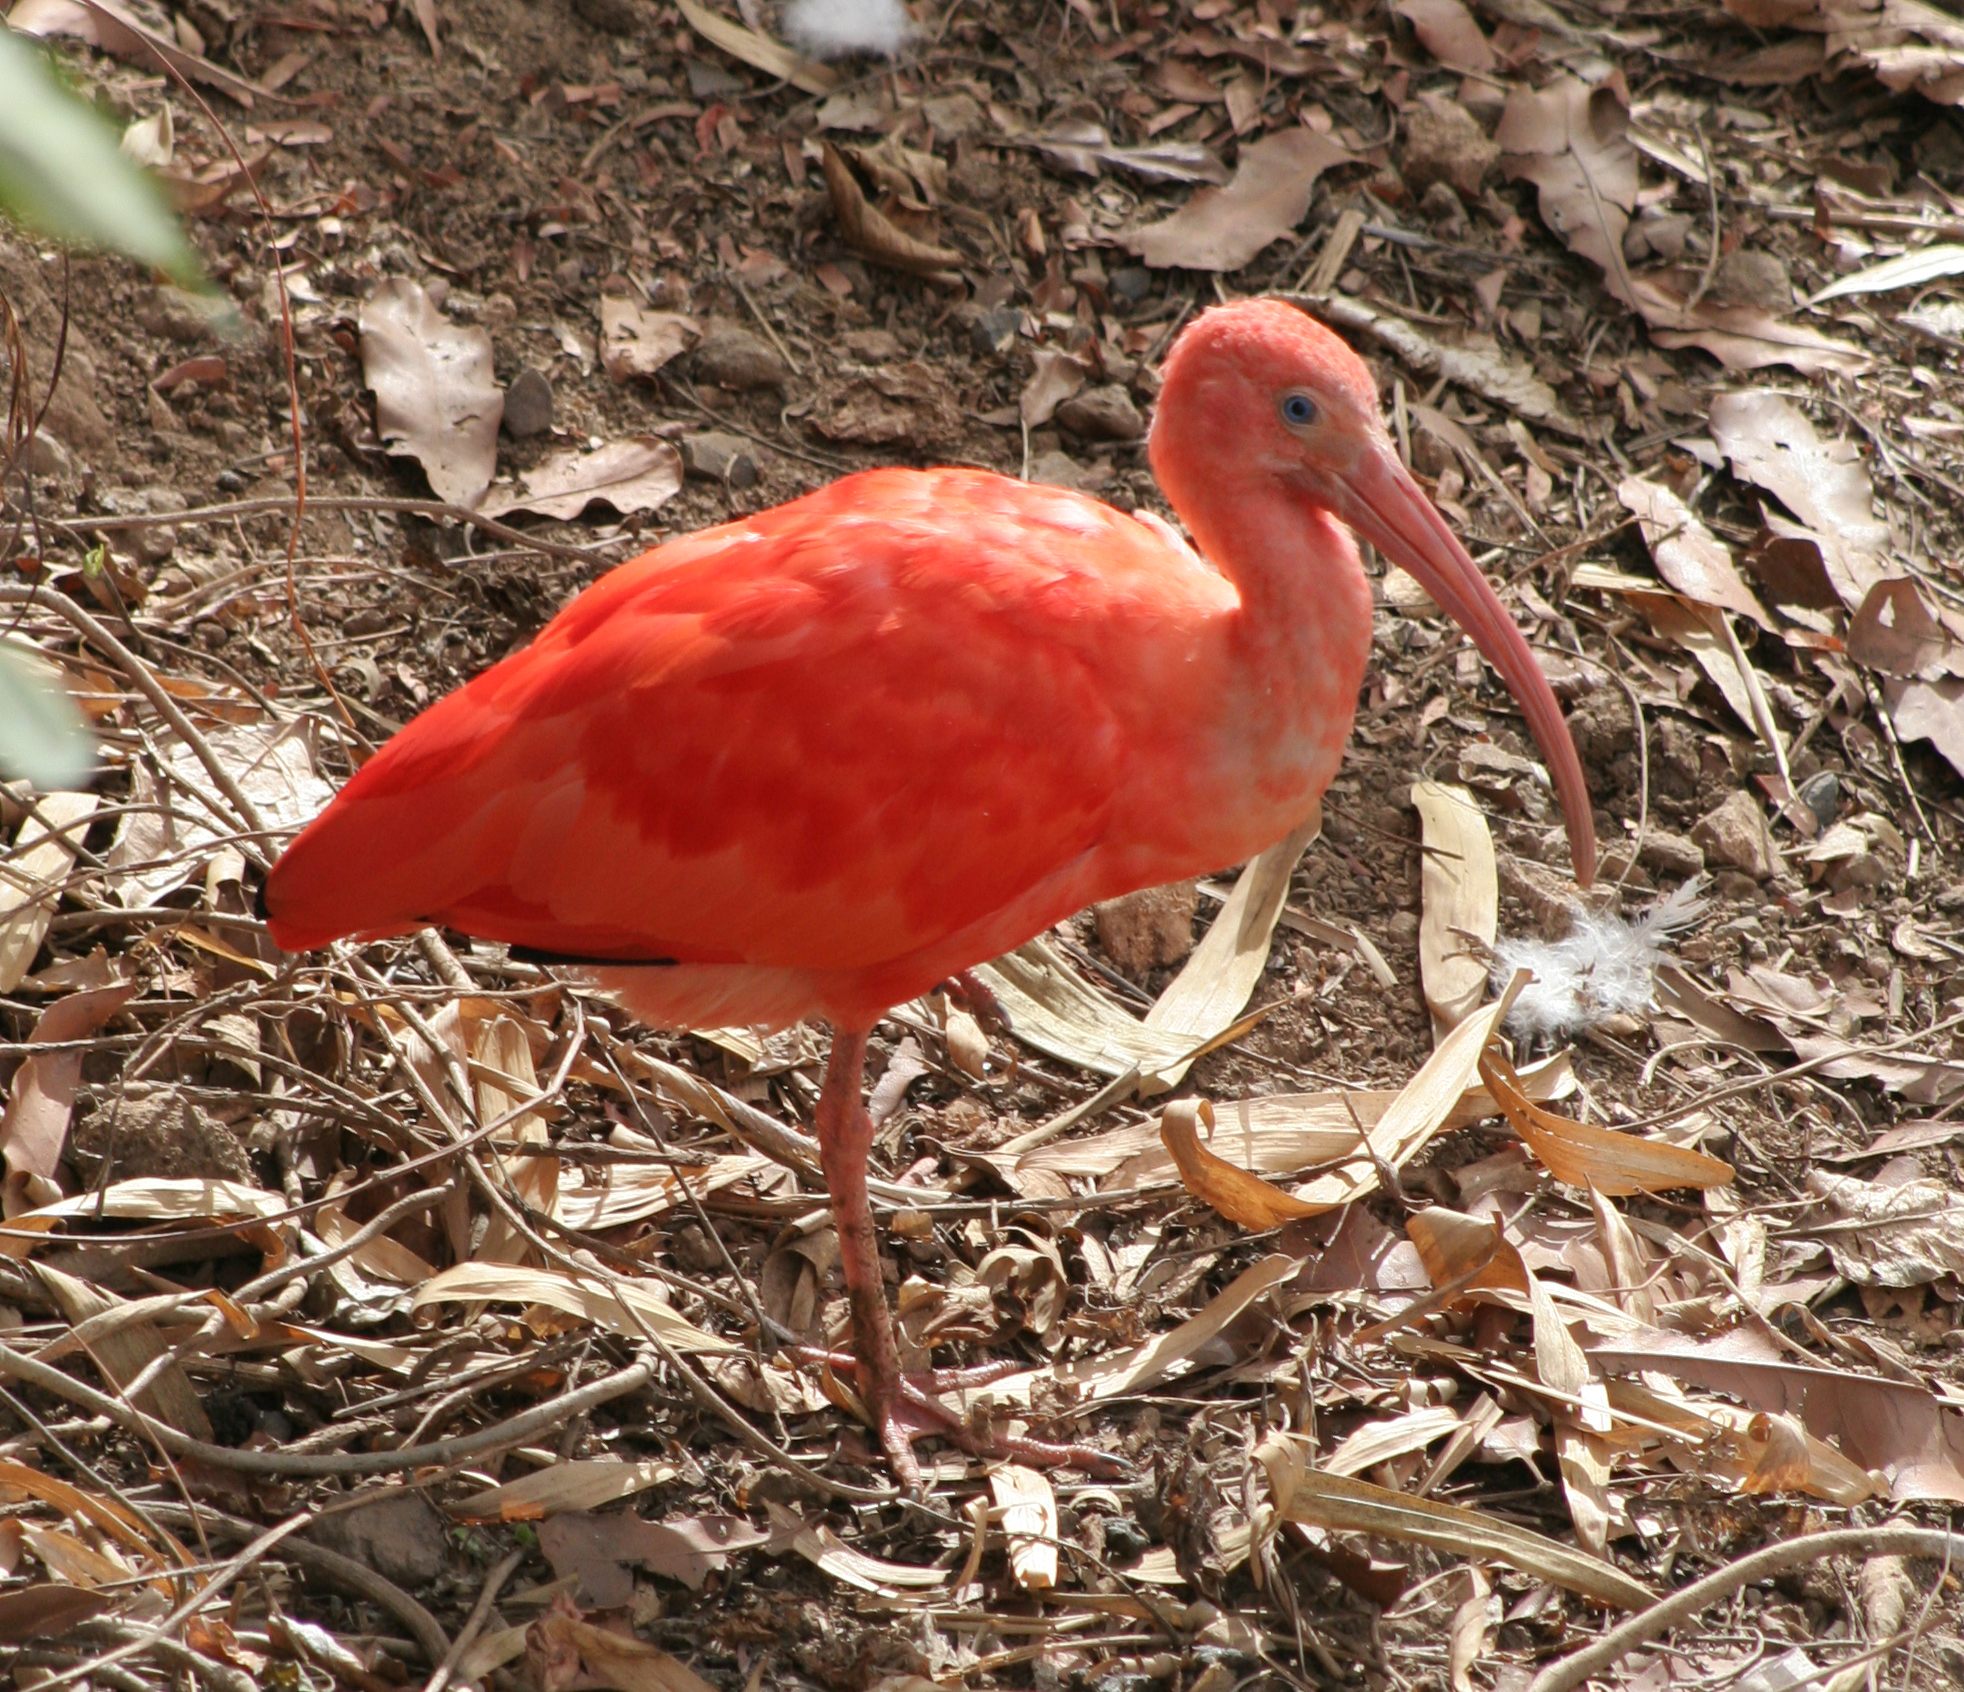 scarlet ibis thesis essay Scarlet ibis - pride essayspride can be defined as: the trait of being spurred on  by a dislike of falling below your standards the narrator in the scarlet ibis, a.